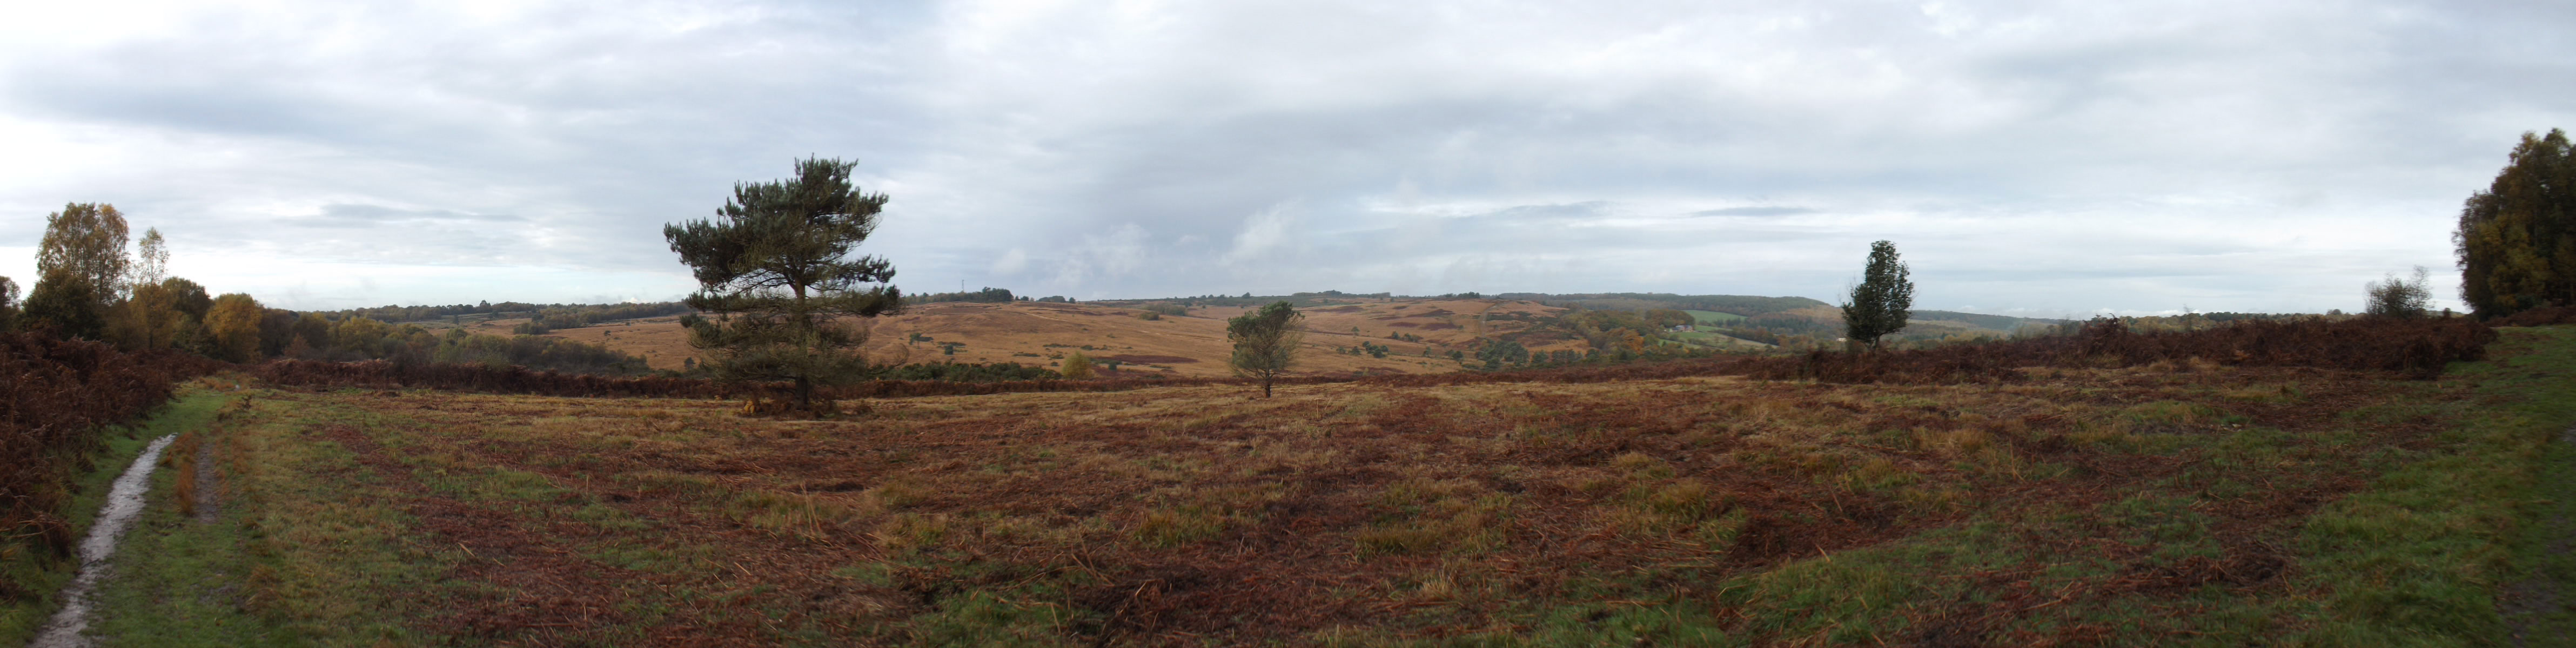 Ashdown-Forest-Panorama